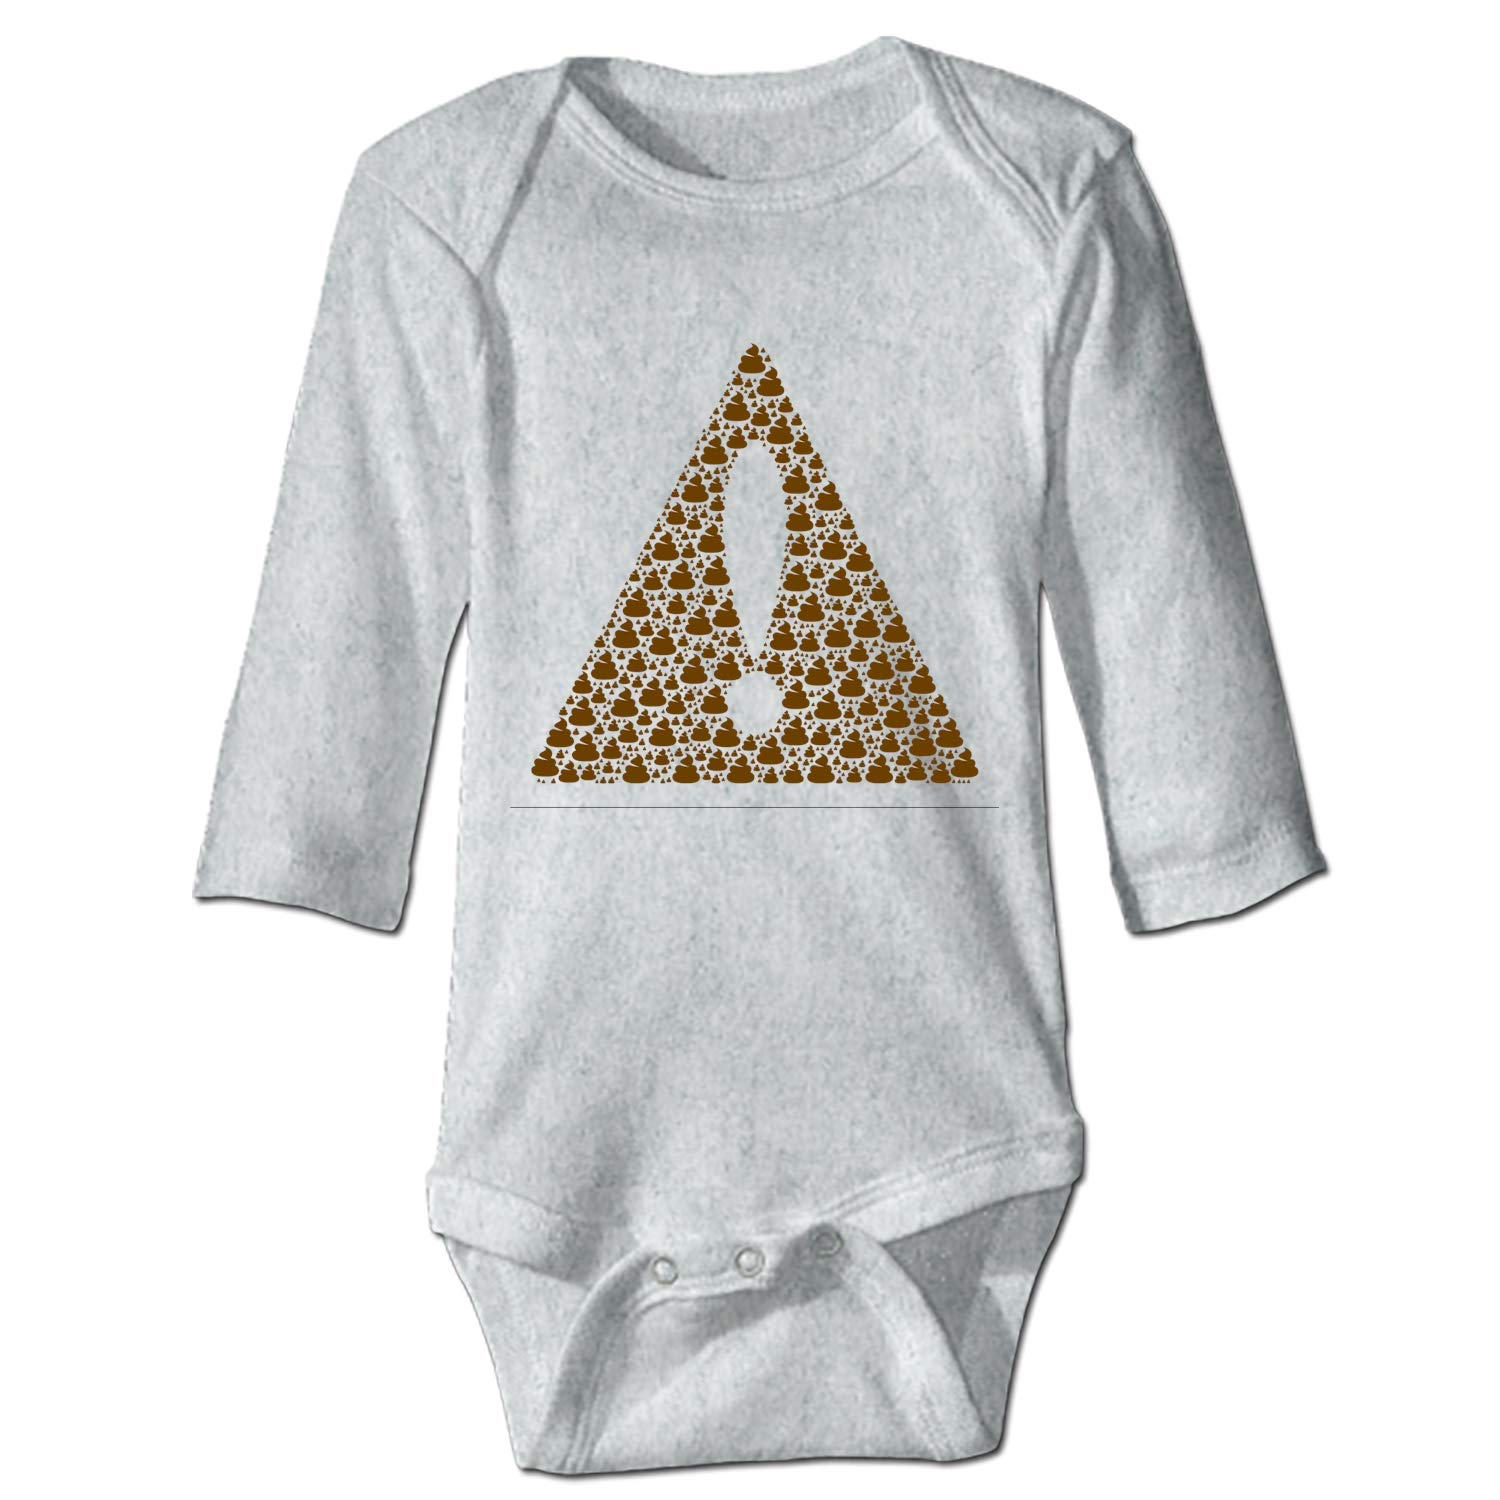 Clothing Baby Love Poker Baby Bodysuit 6 Months